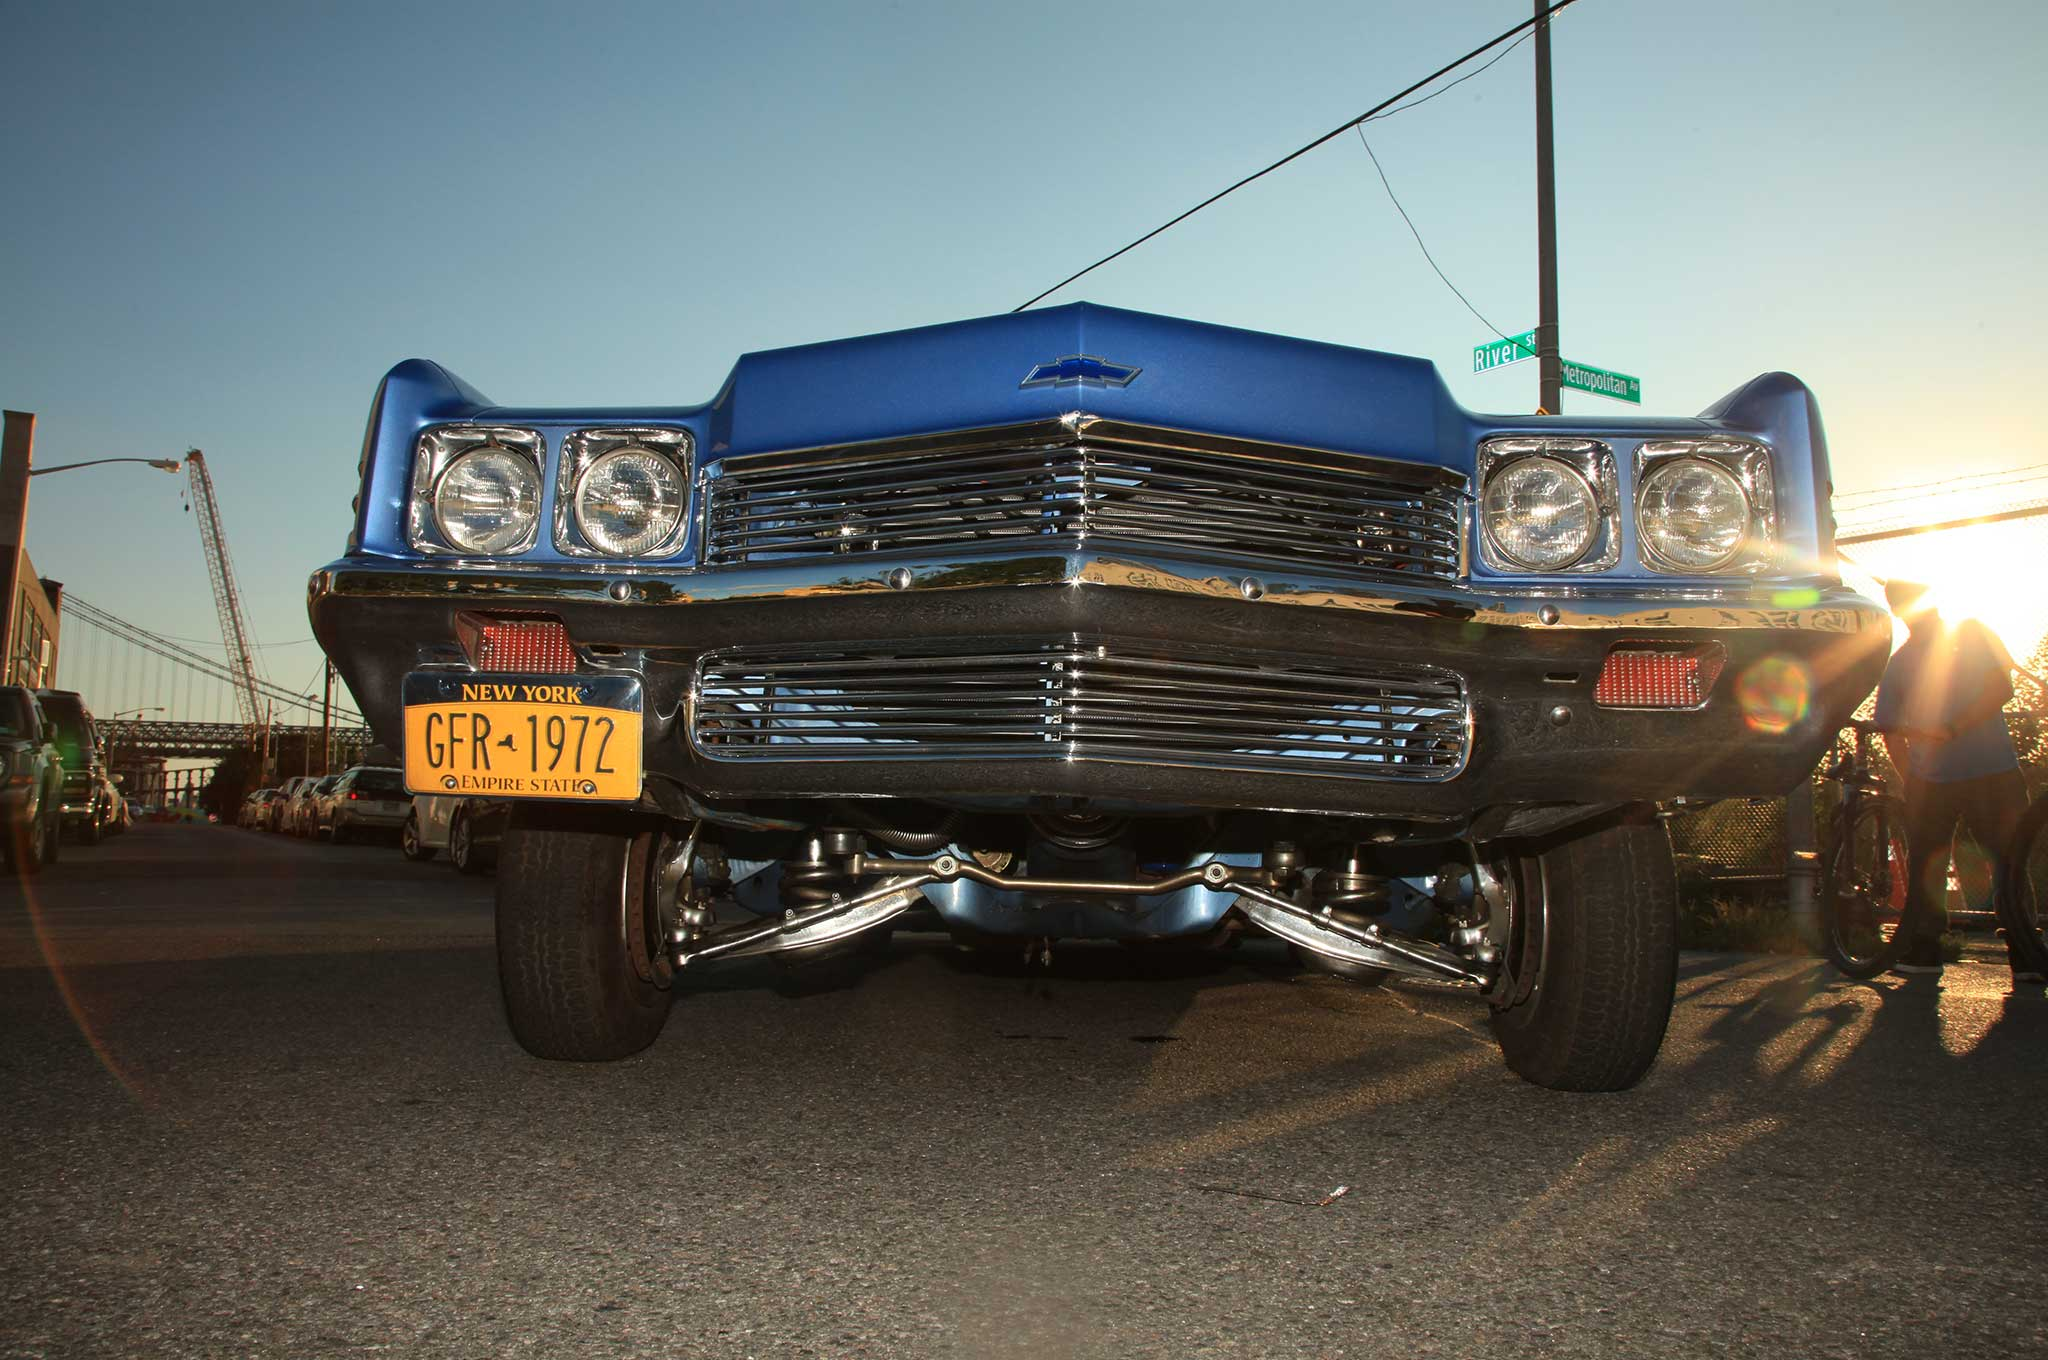 A '72 Chevy Impala That's LA Built for NY Riding